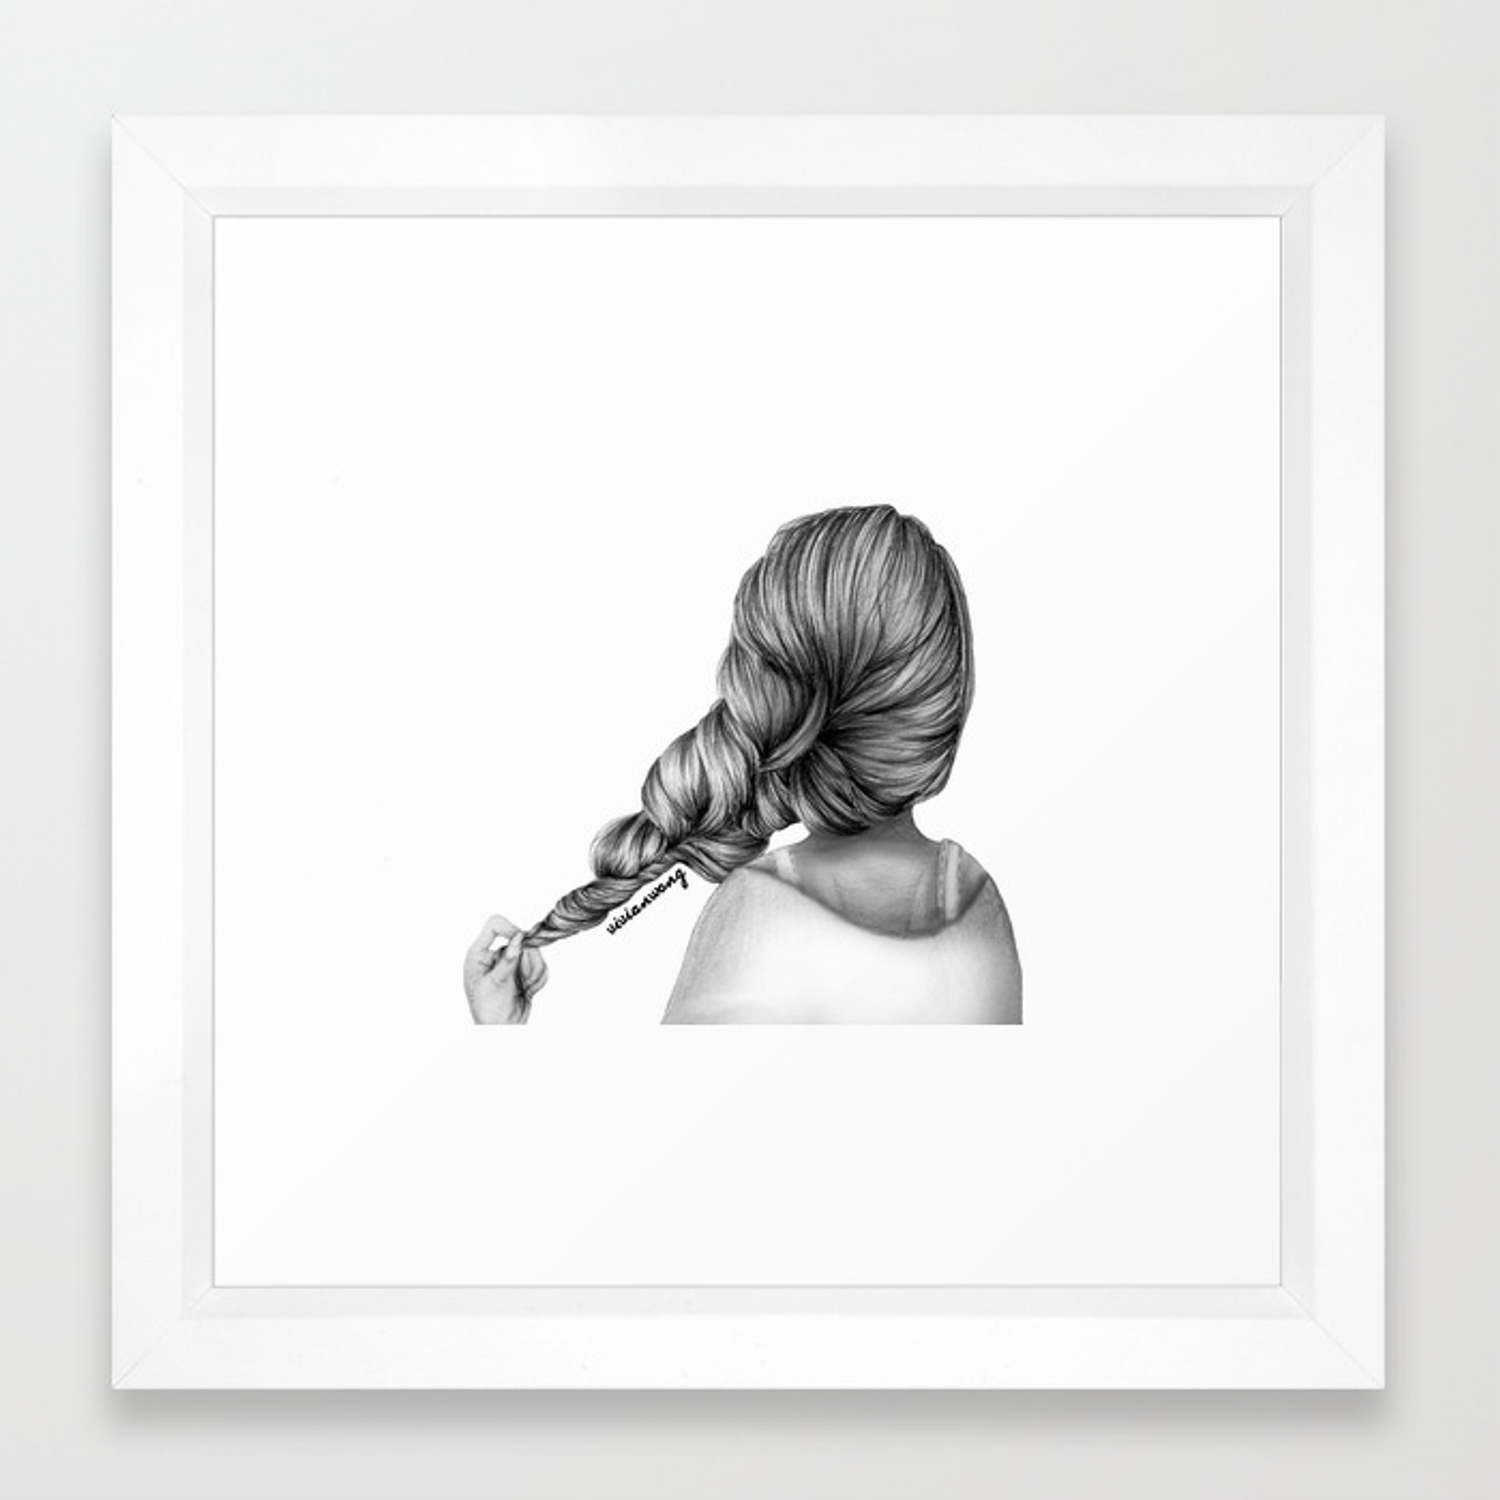 Girl holding hair braid pencil drawing framed art print